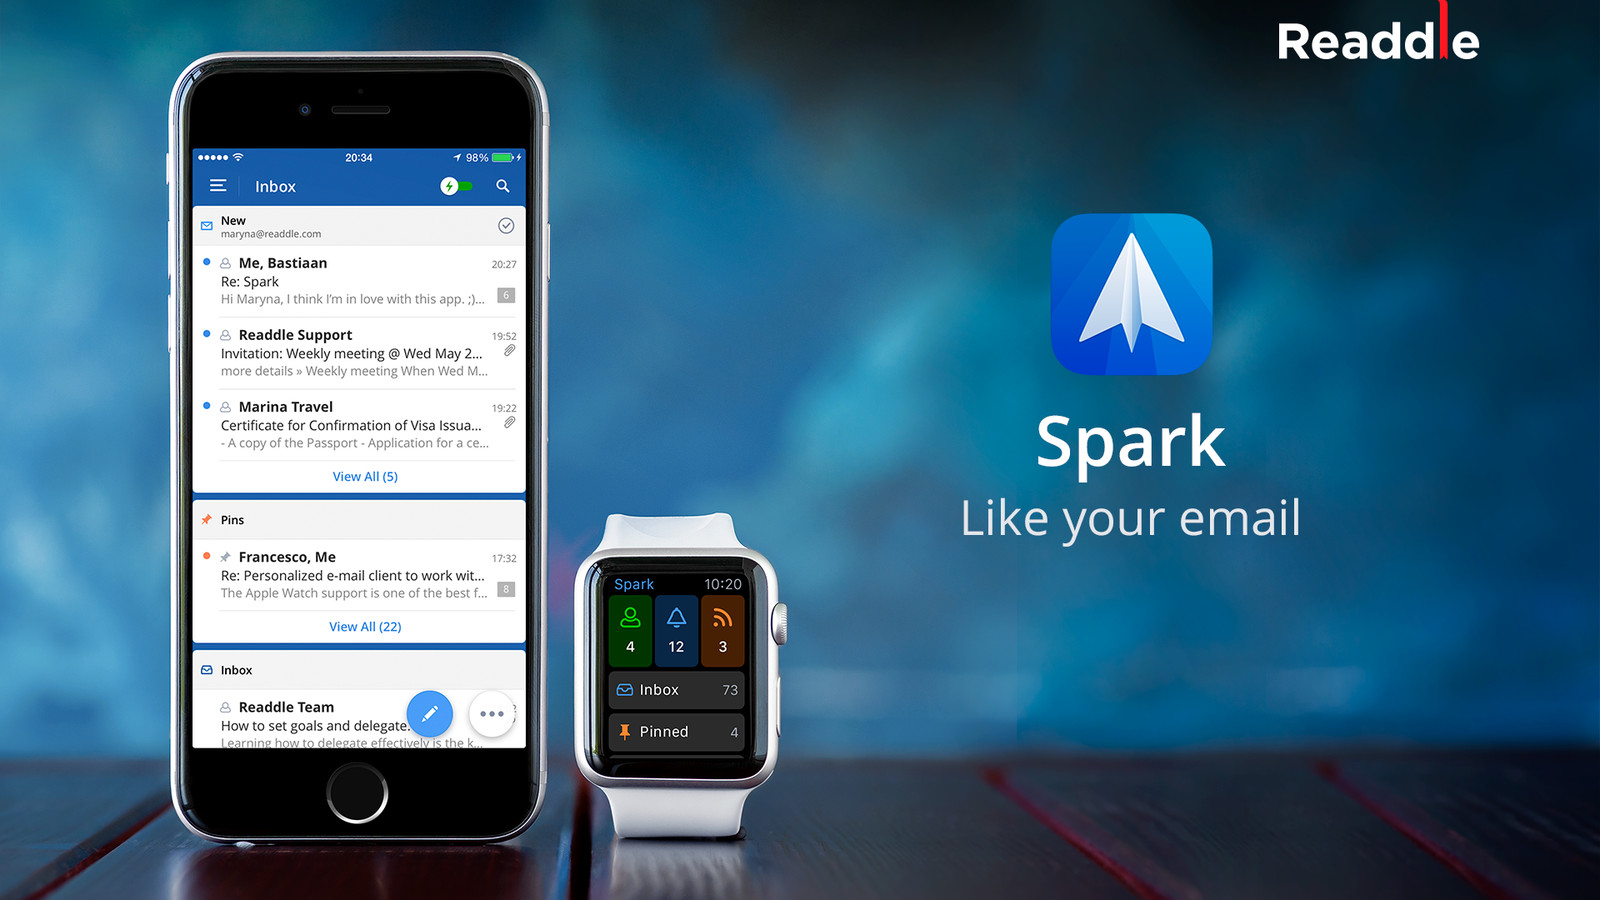 Spark for iPhone is a fast, smart way to manage your email ...